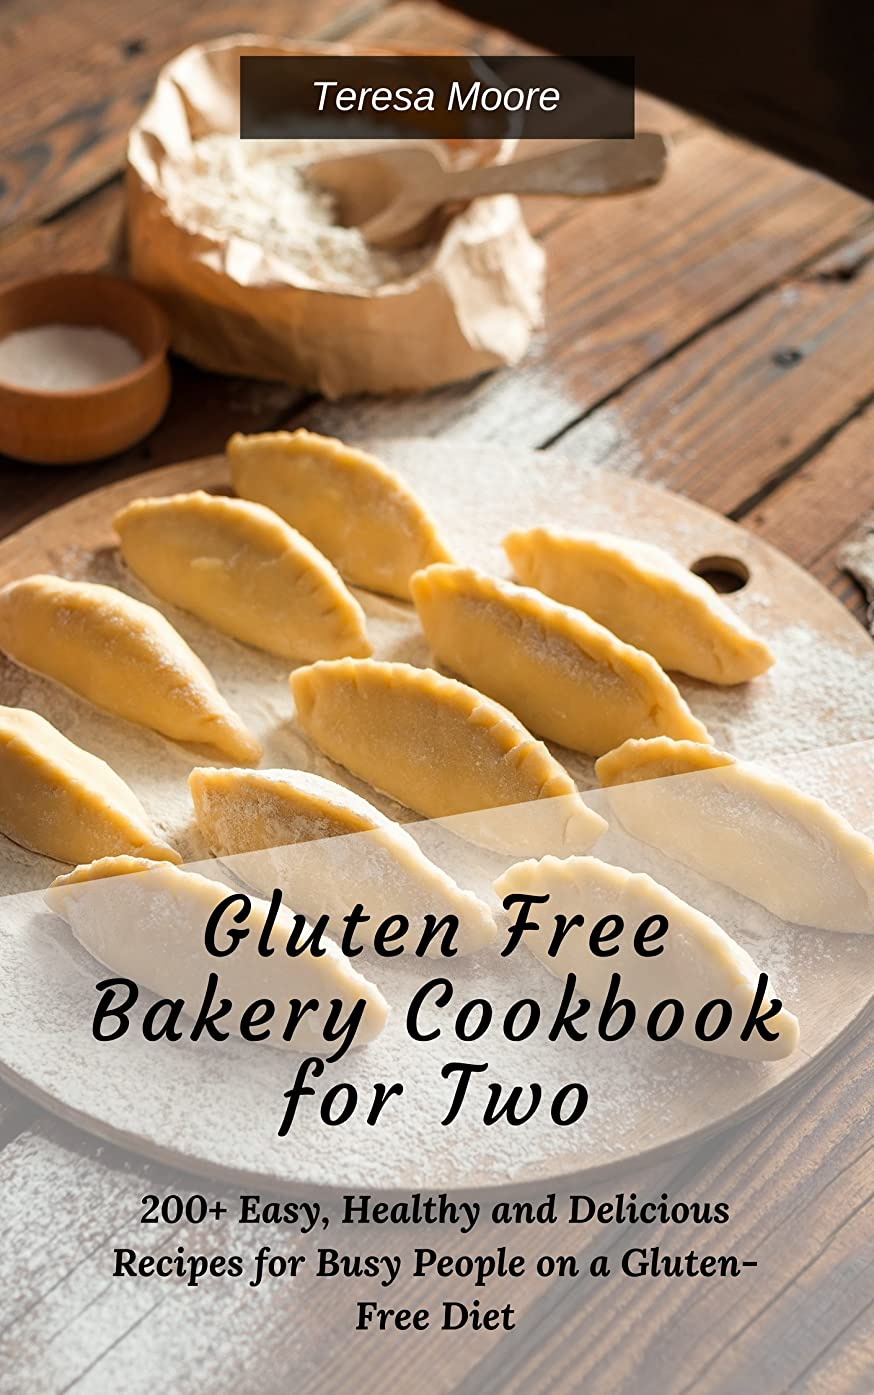 Gluten Free Bakery Cookbook for Two:  200+ Easy, Healthy and Delicious Recipes for Busy People on a Gluten-Free Diet (Quick and Easy Natural Food 7) (English Edition)